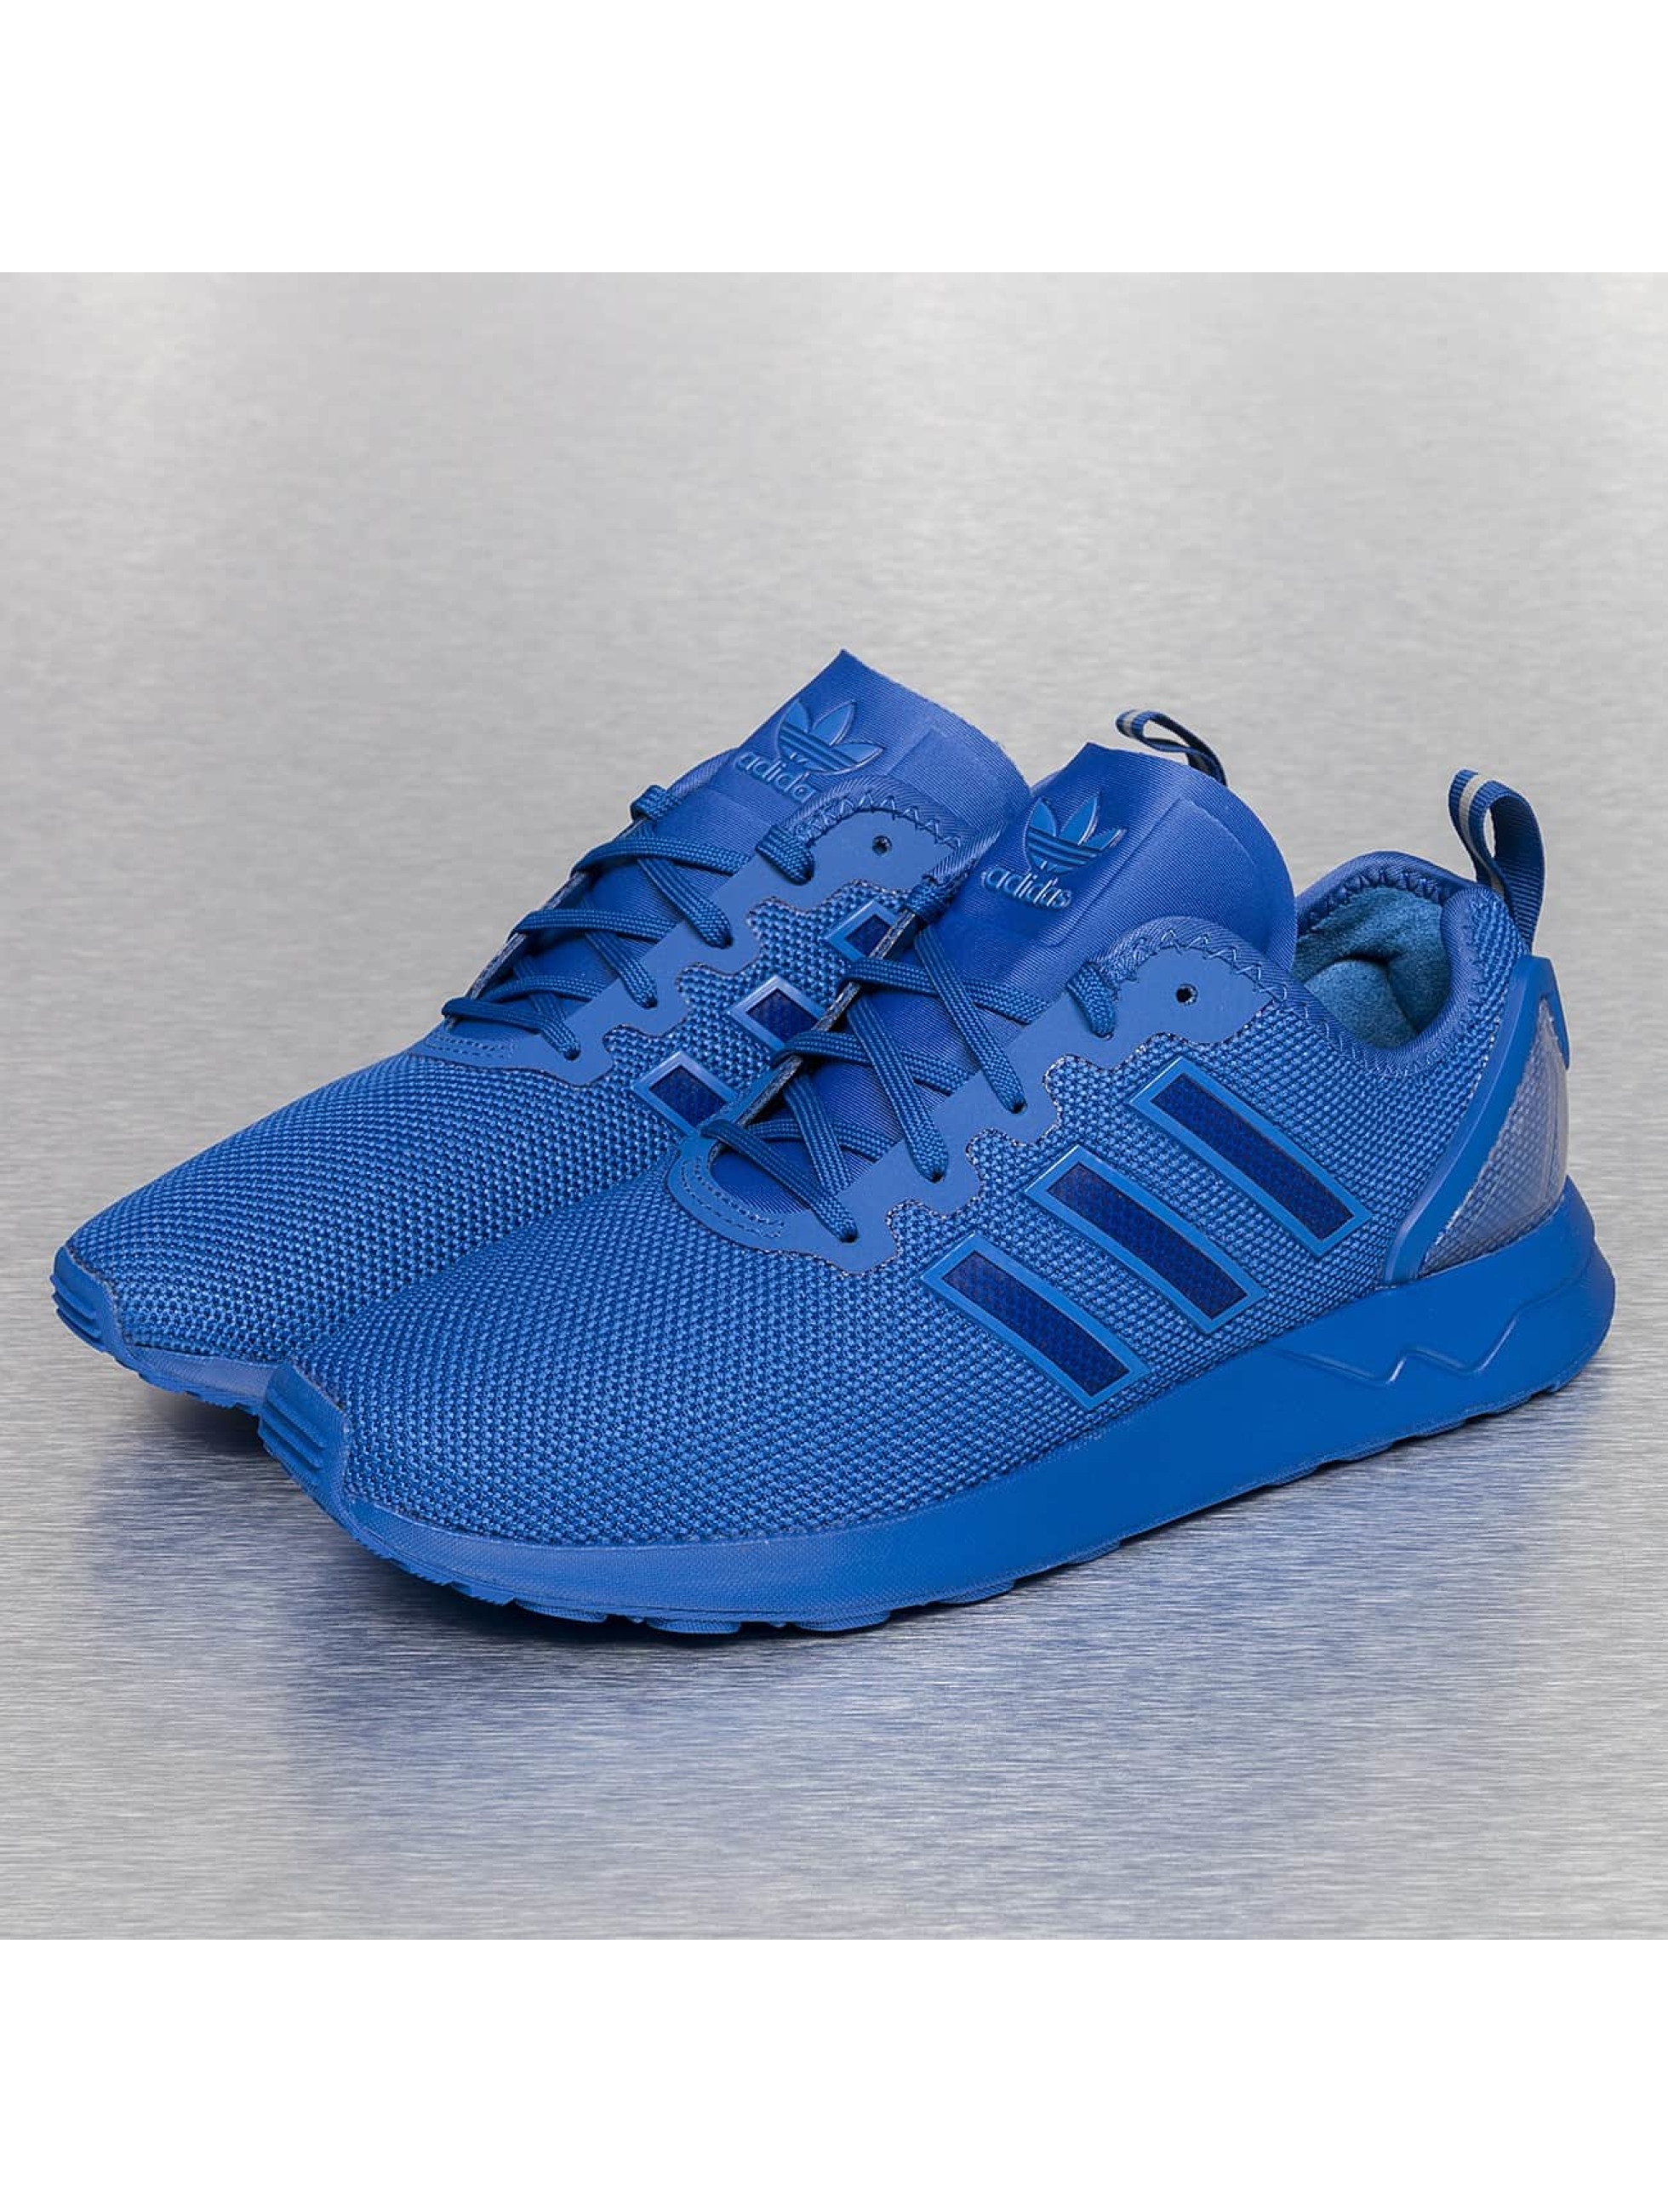 adidas zx flux komplett blau ibs. Black Bedroom Furniture Sets. Home Design Ideas